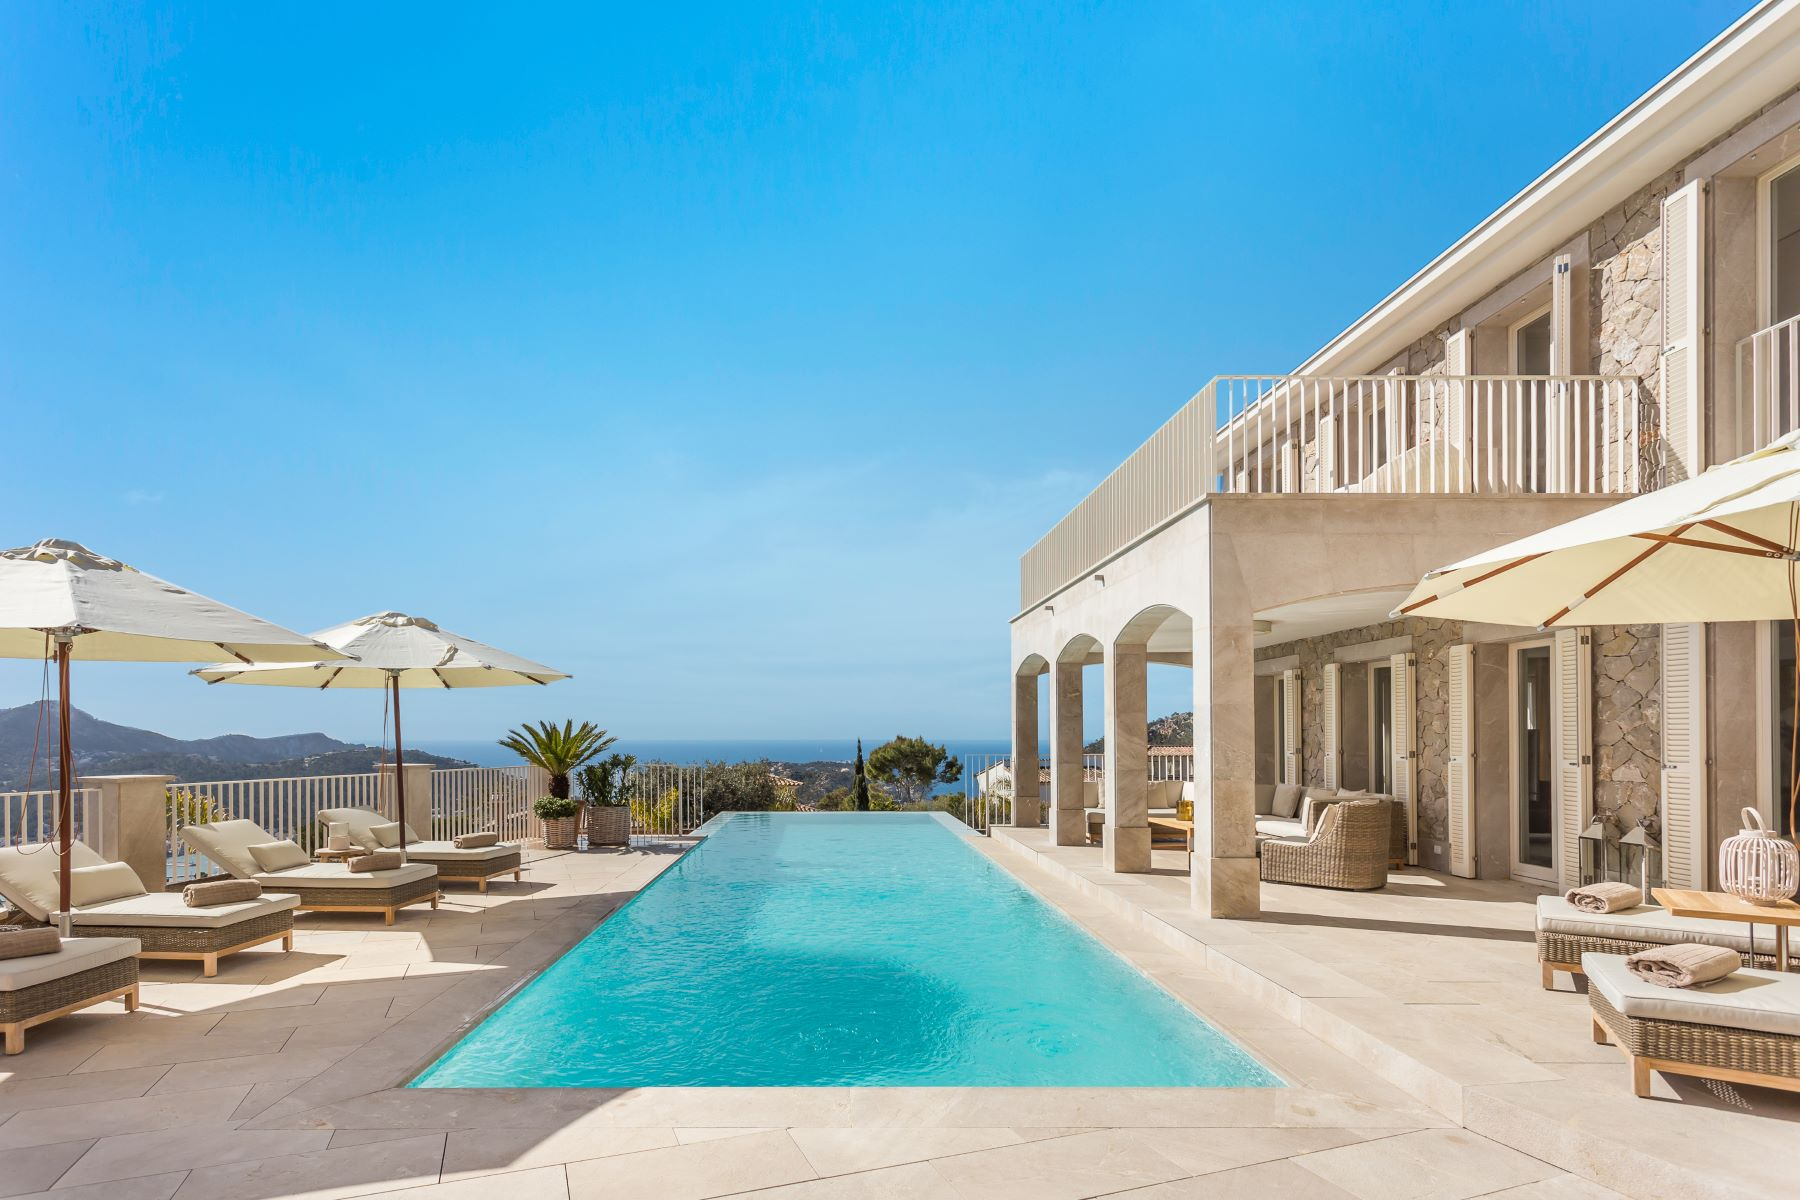 Single Family Home for Sale at Luxury villa with panoramic views in Port Andratx Port Andratx, Mallorca, Spain